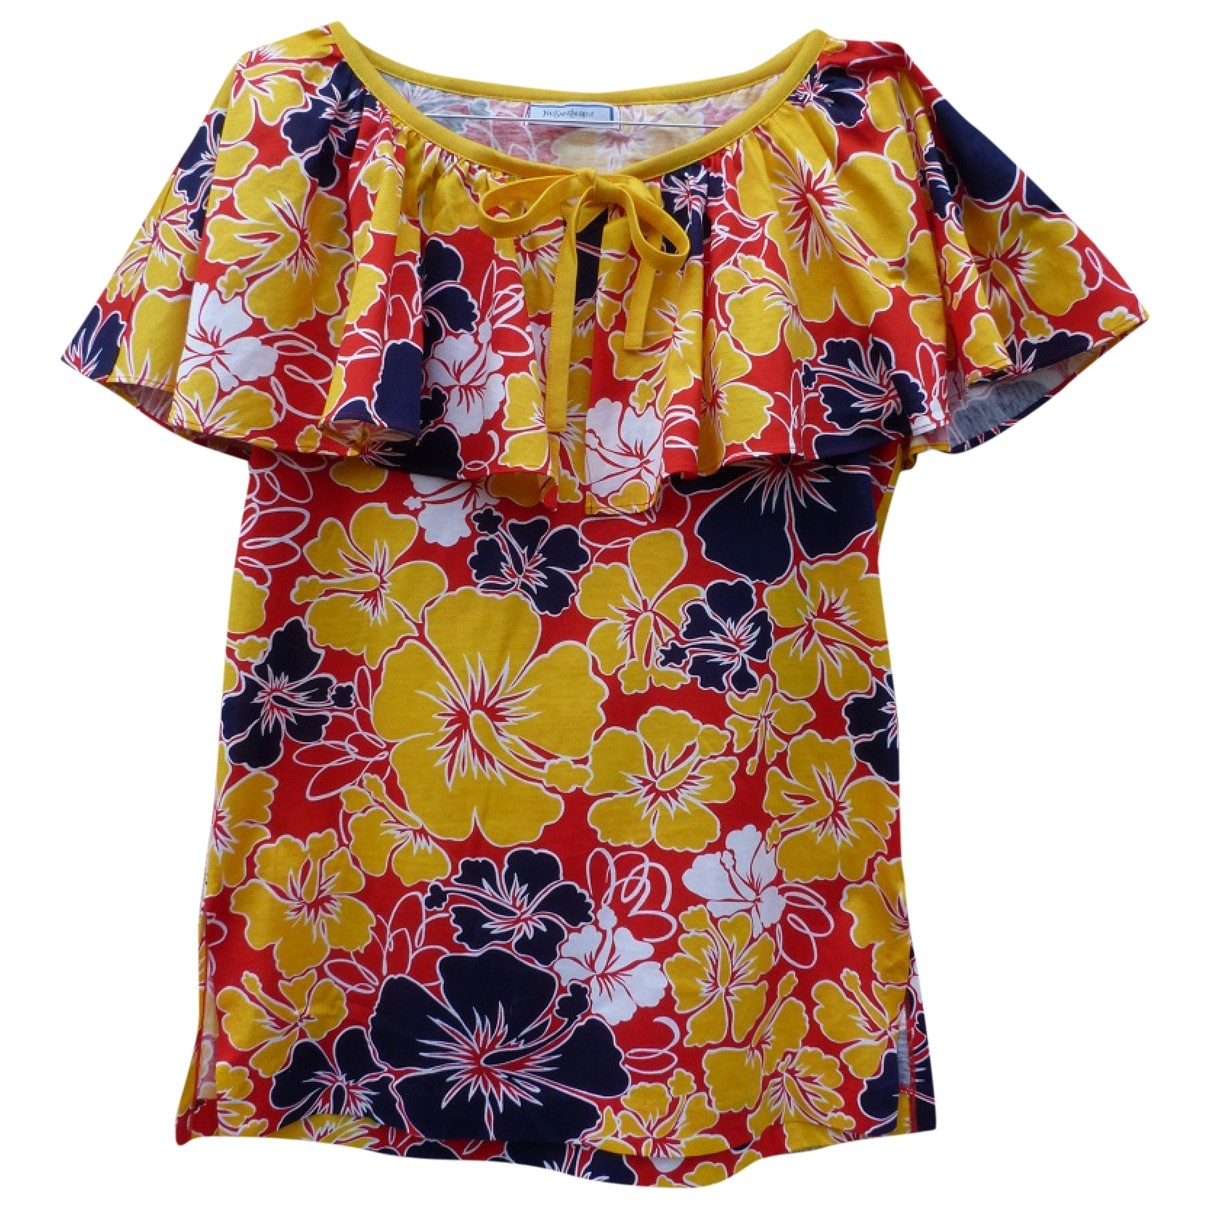 Yves Saint Laurent \N Top in  Bunt Baumwolle